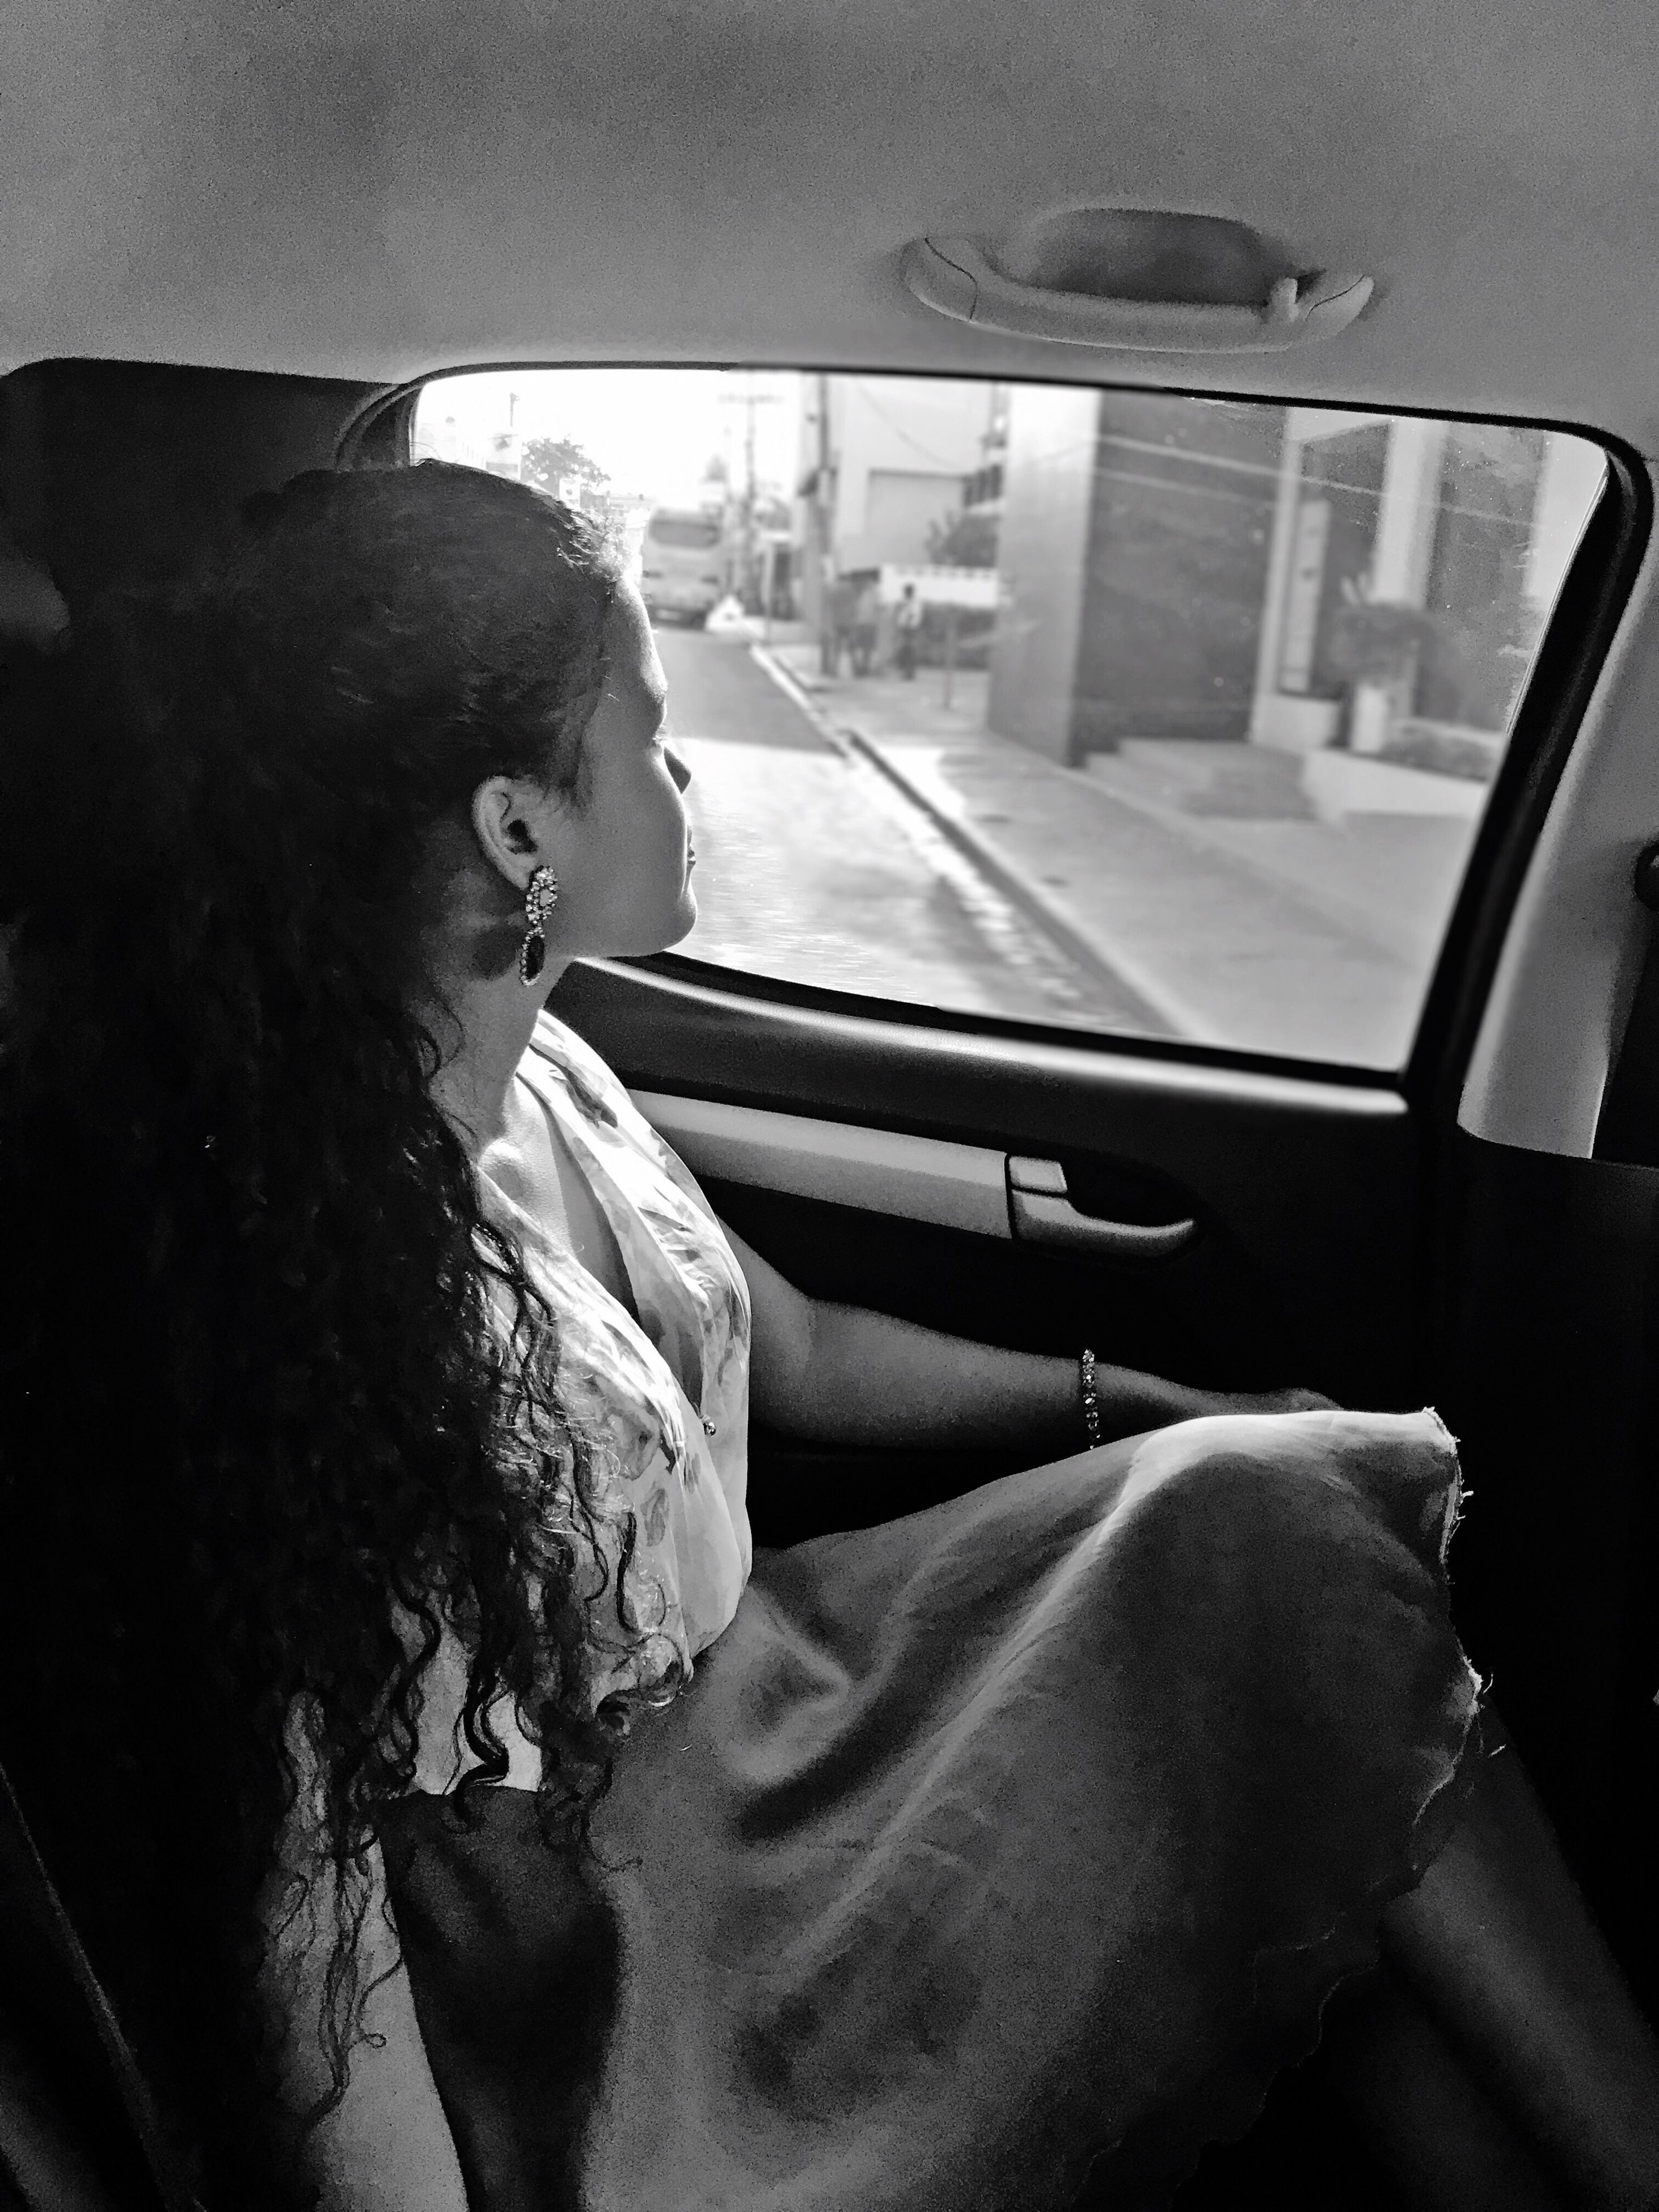 vehicle interior, car interior, transportation, car, mode of transport, land vehicle, one person, real people, journey, sitting, day, vehicle seat, young adult, young women, close-up, outdoors, people